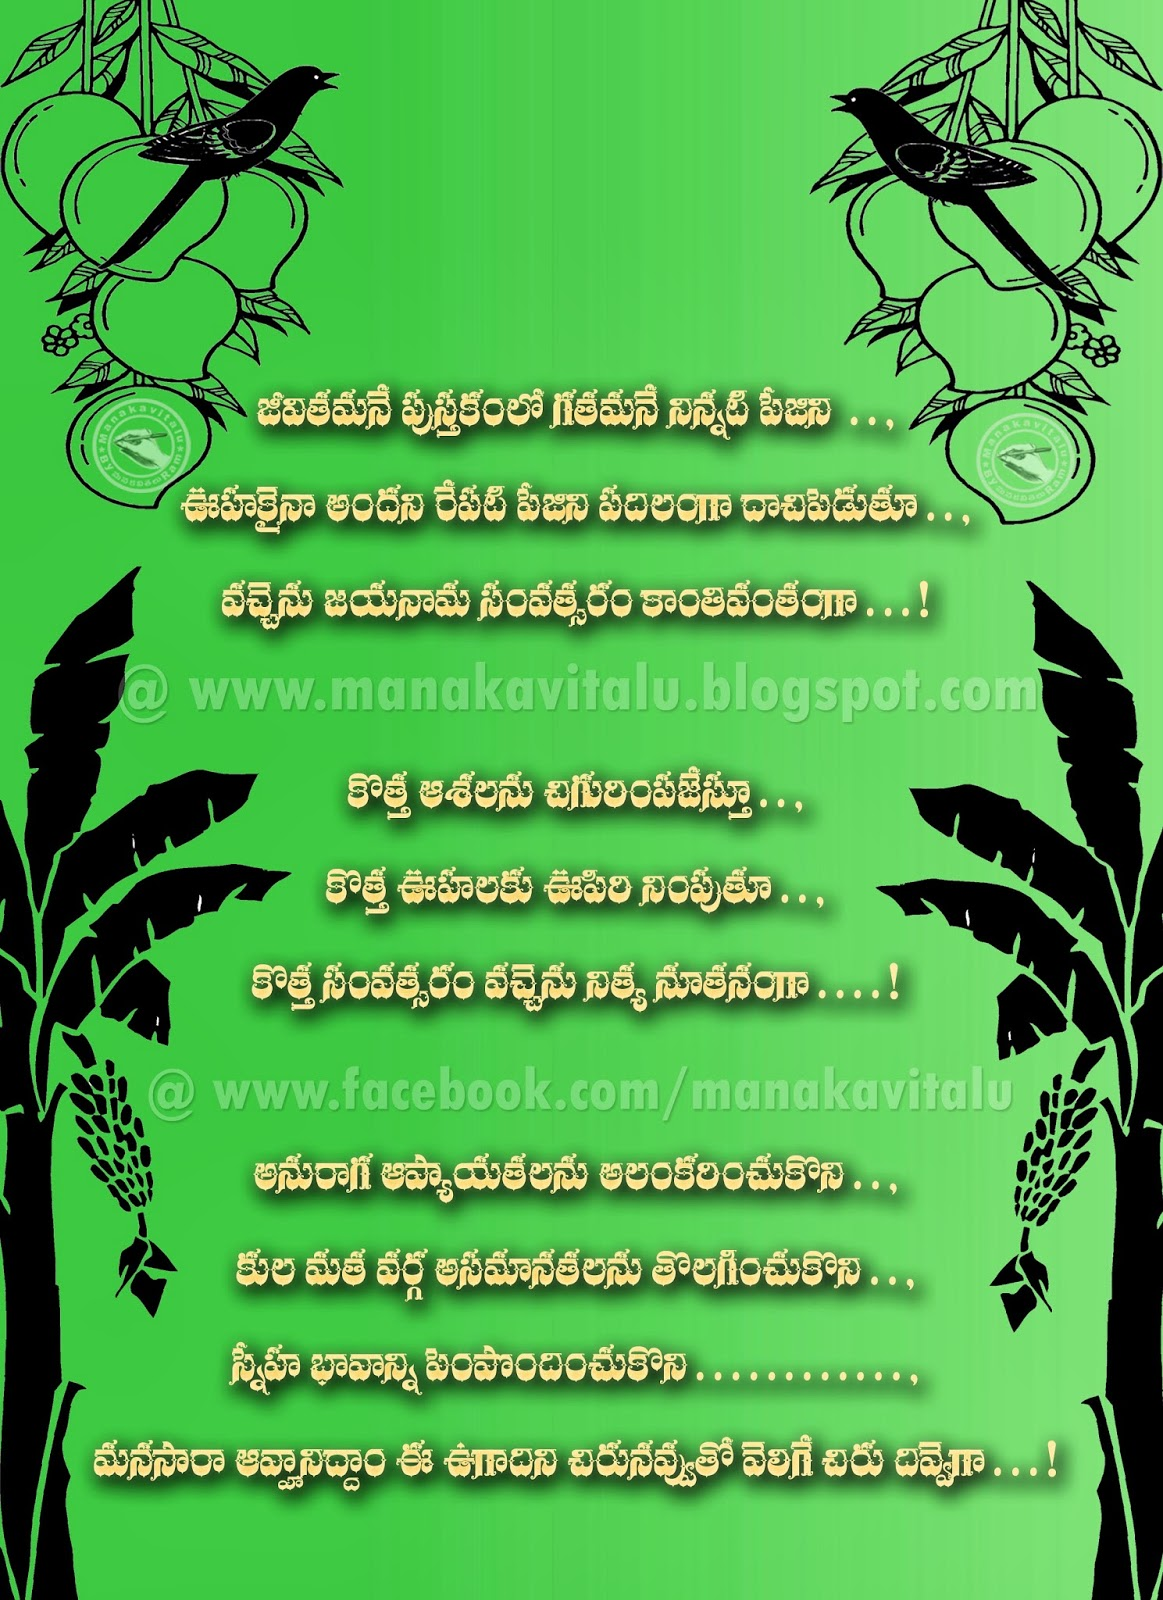 ugadi subhakankshalu wishes telugu kavitha, message, kavitvam, katha, poetry in english to by manakavitalu submitted by savitha on images photos jpg gif png downloads